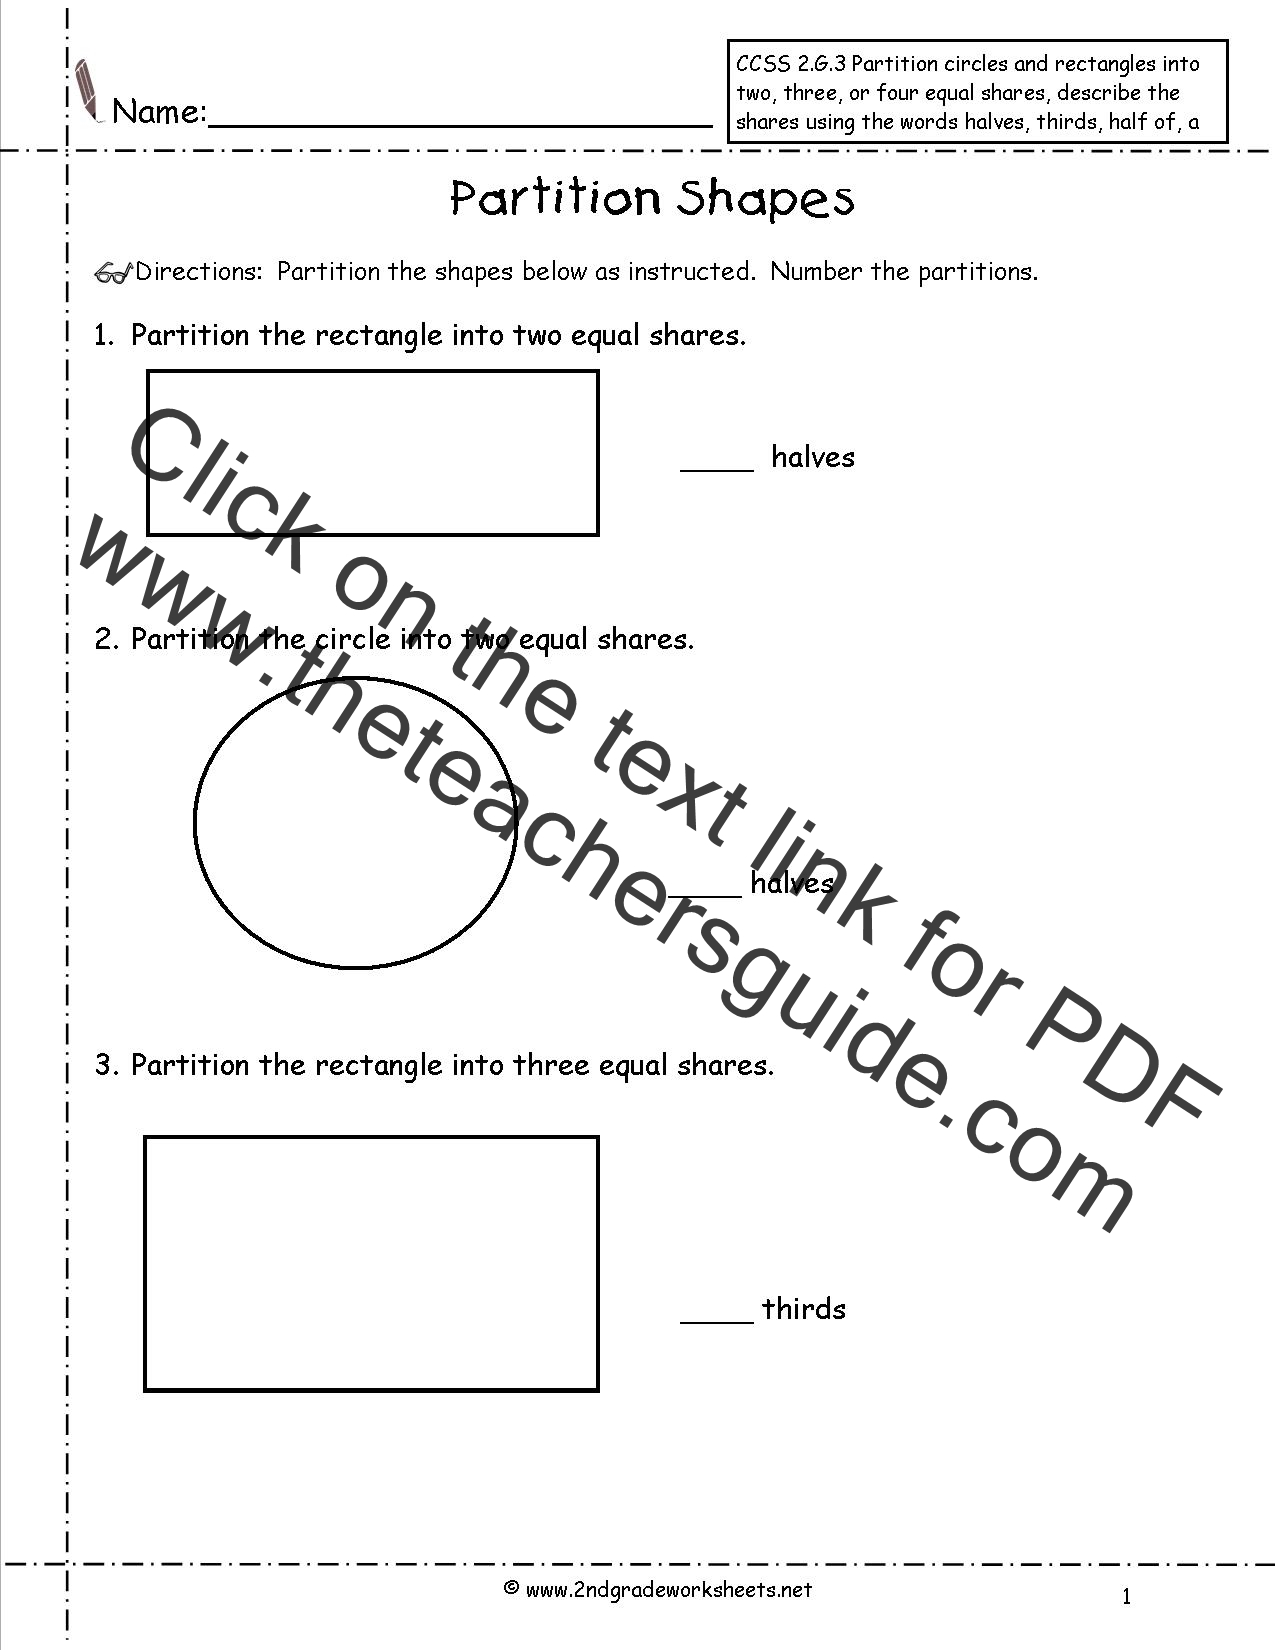 Common Core Standards Mathematics Worksheet 7th Grade